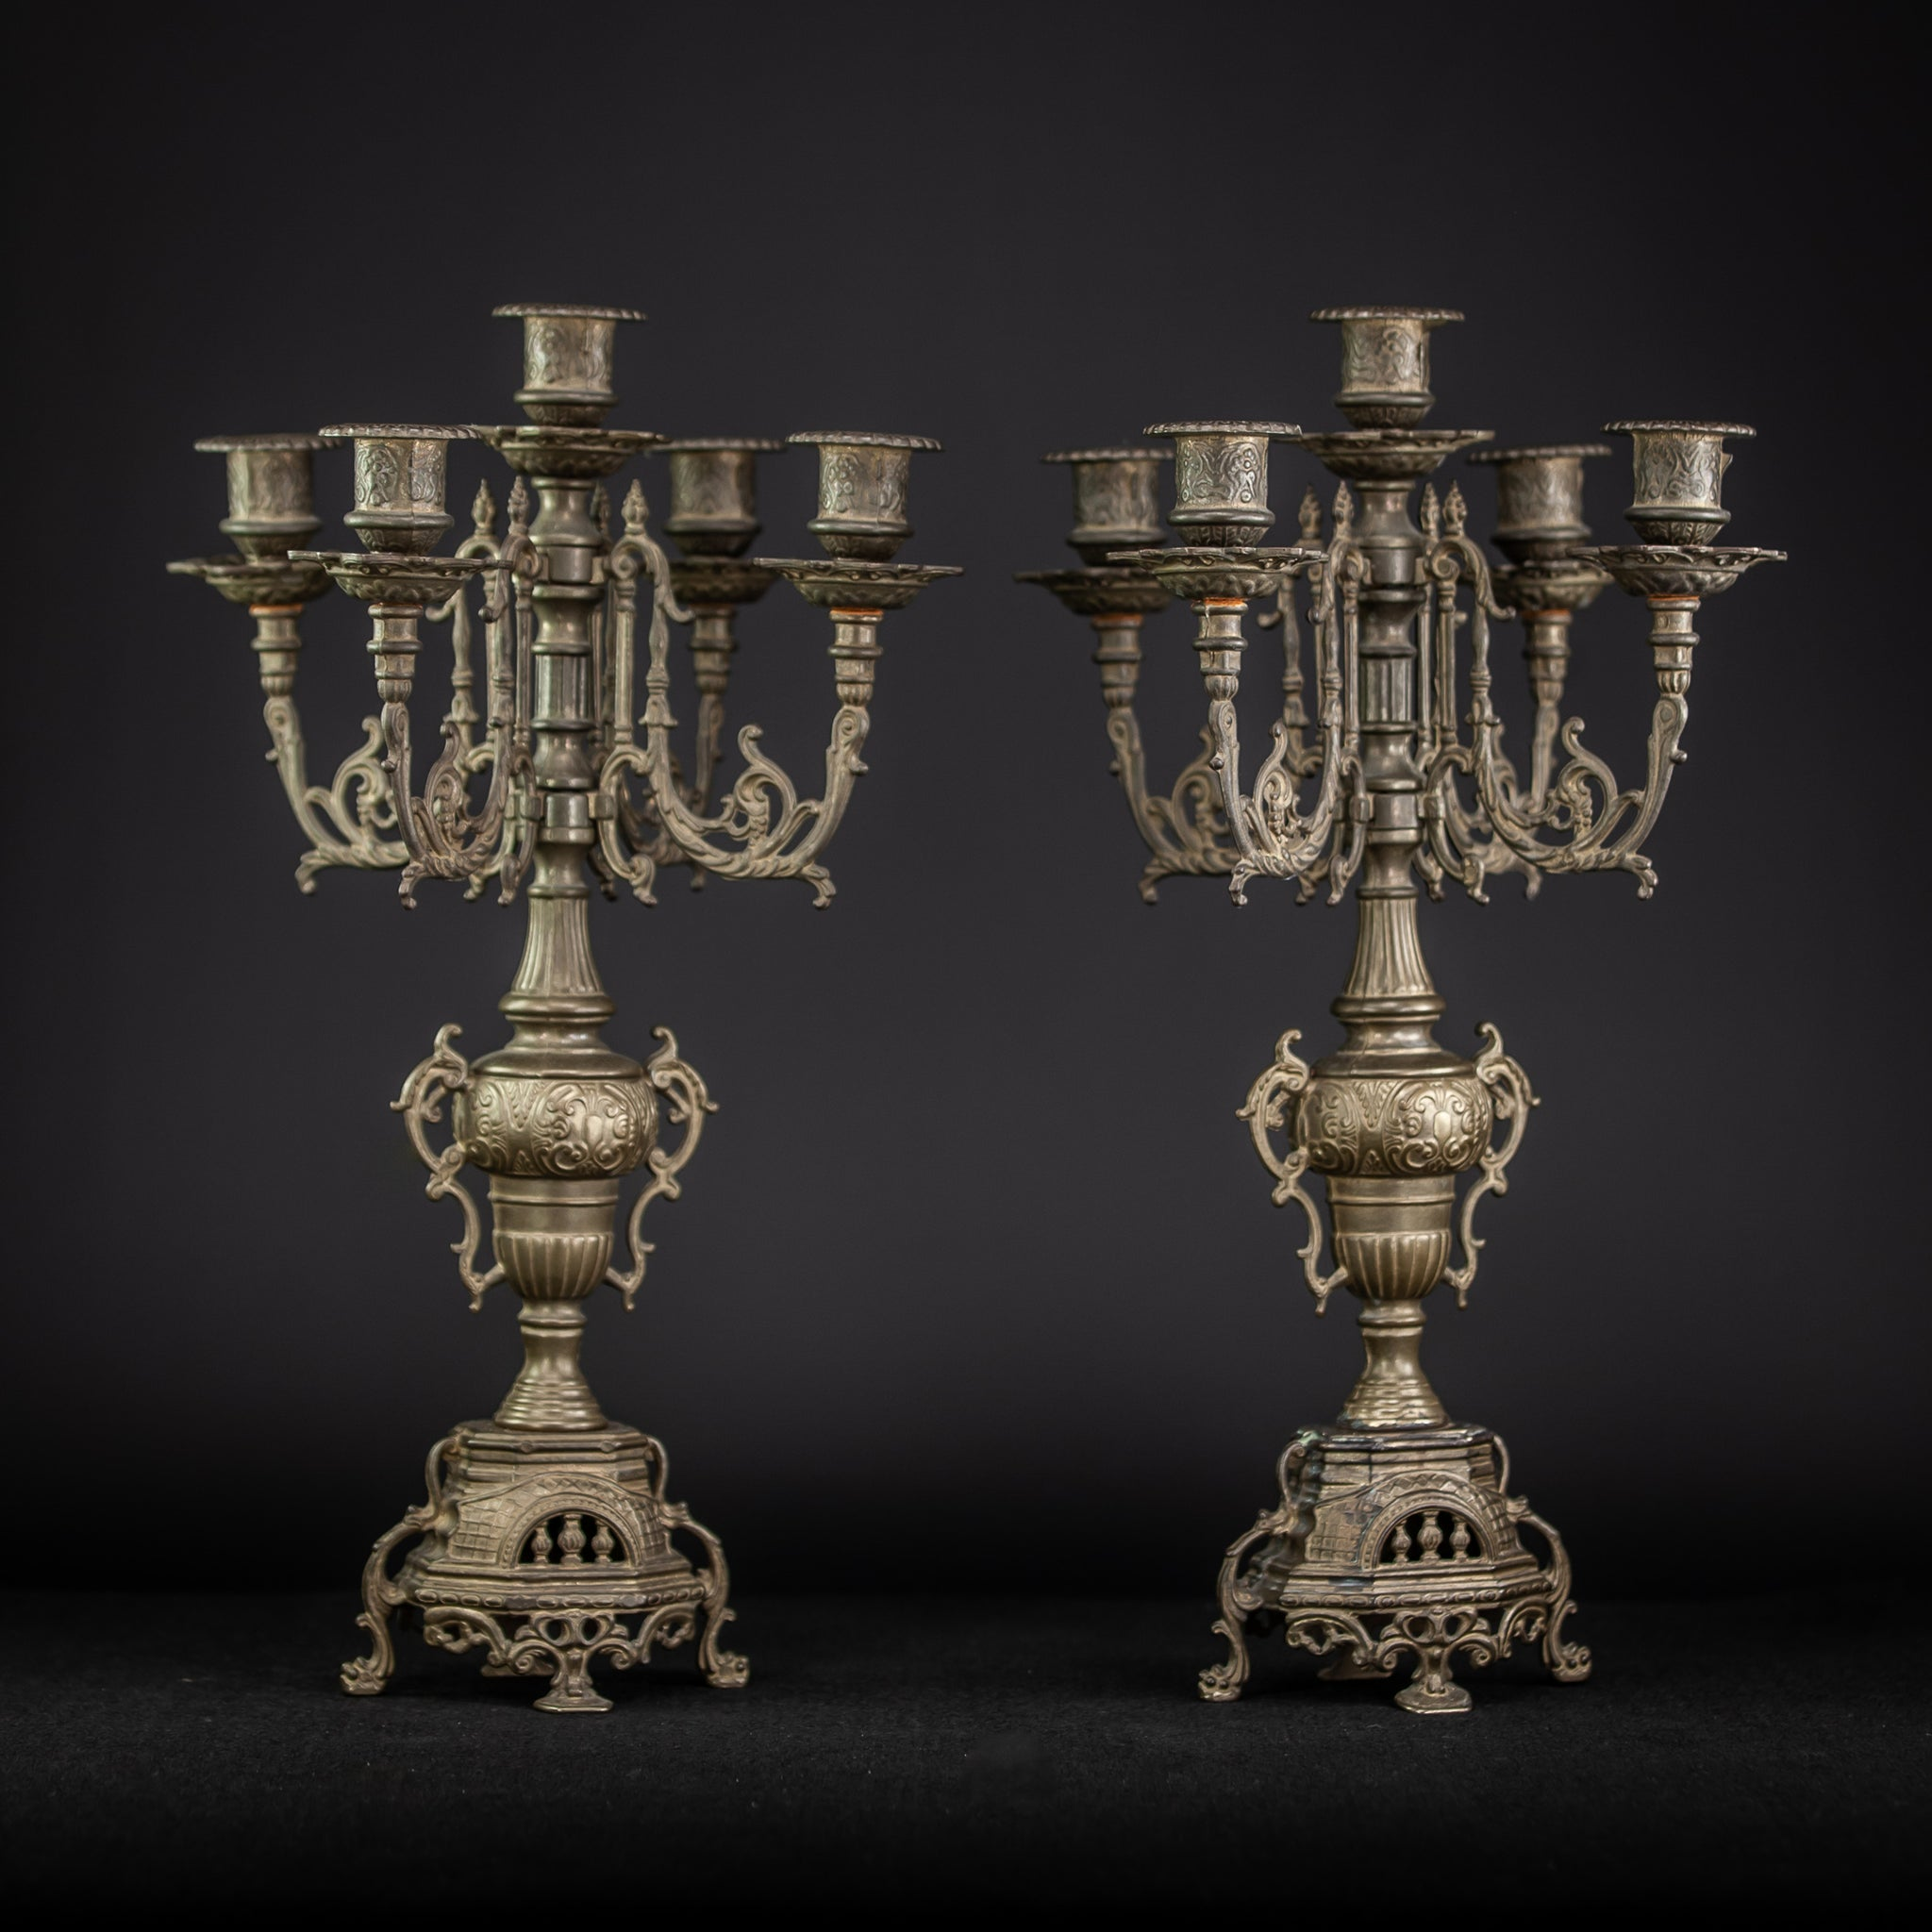 Candelabra Pair Bronze Baroque 5 Arms Lights Tier 16""